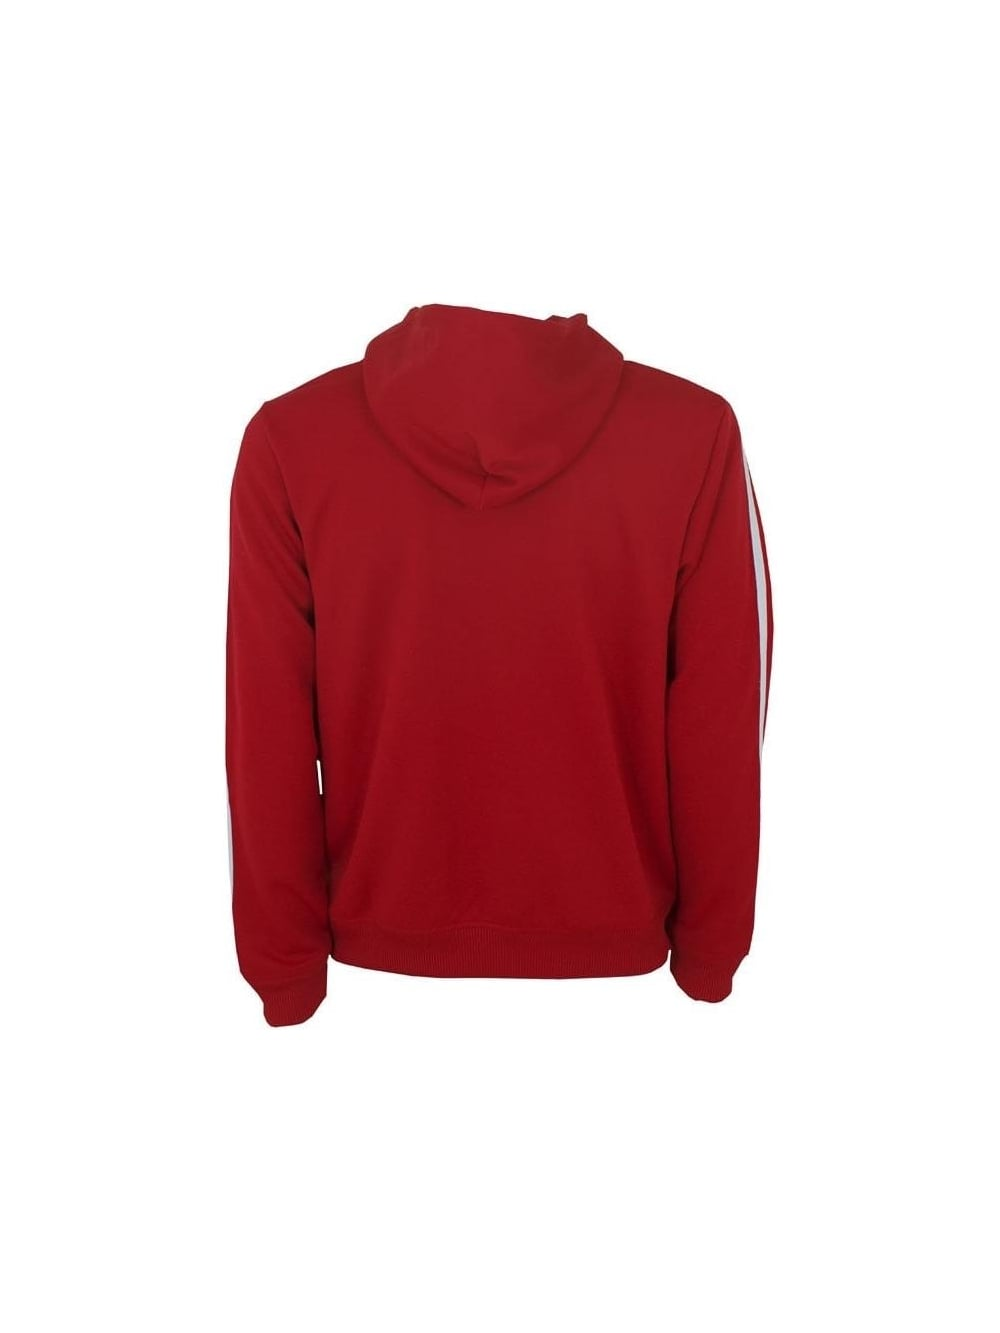 6e8c3442850a1a Adidas Adi Hooded Flock Track Top in Red White - Shop Adidas ...